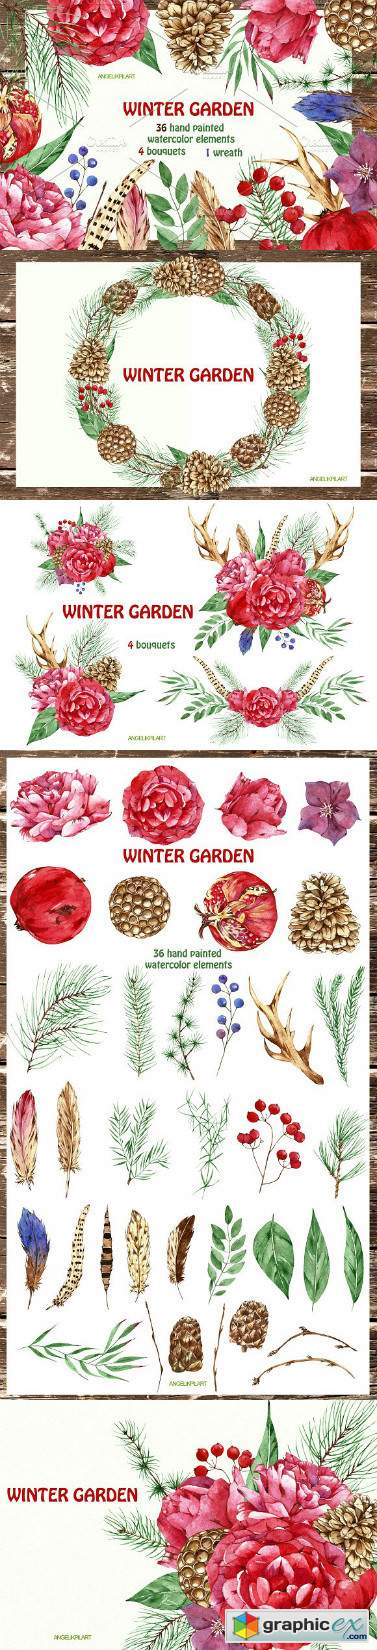 Watercolor set winter garden